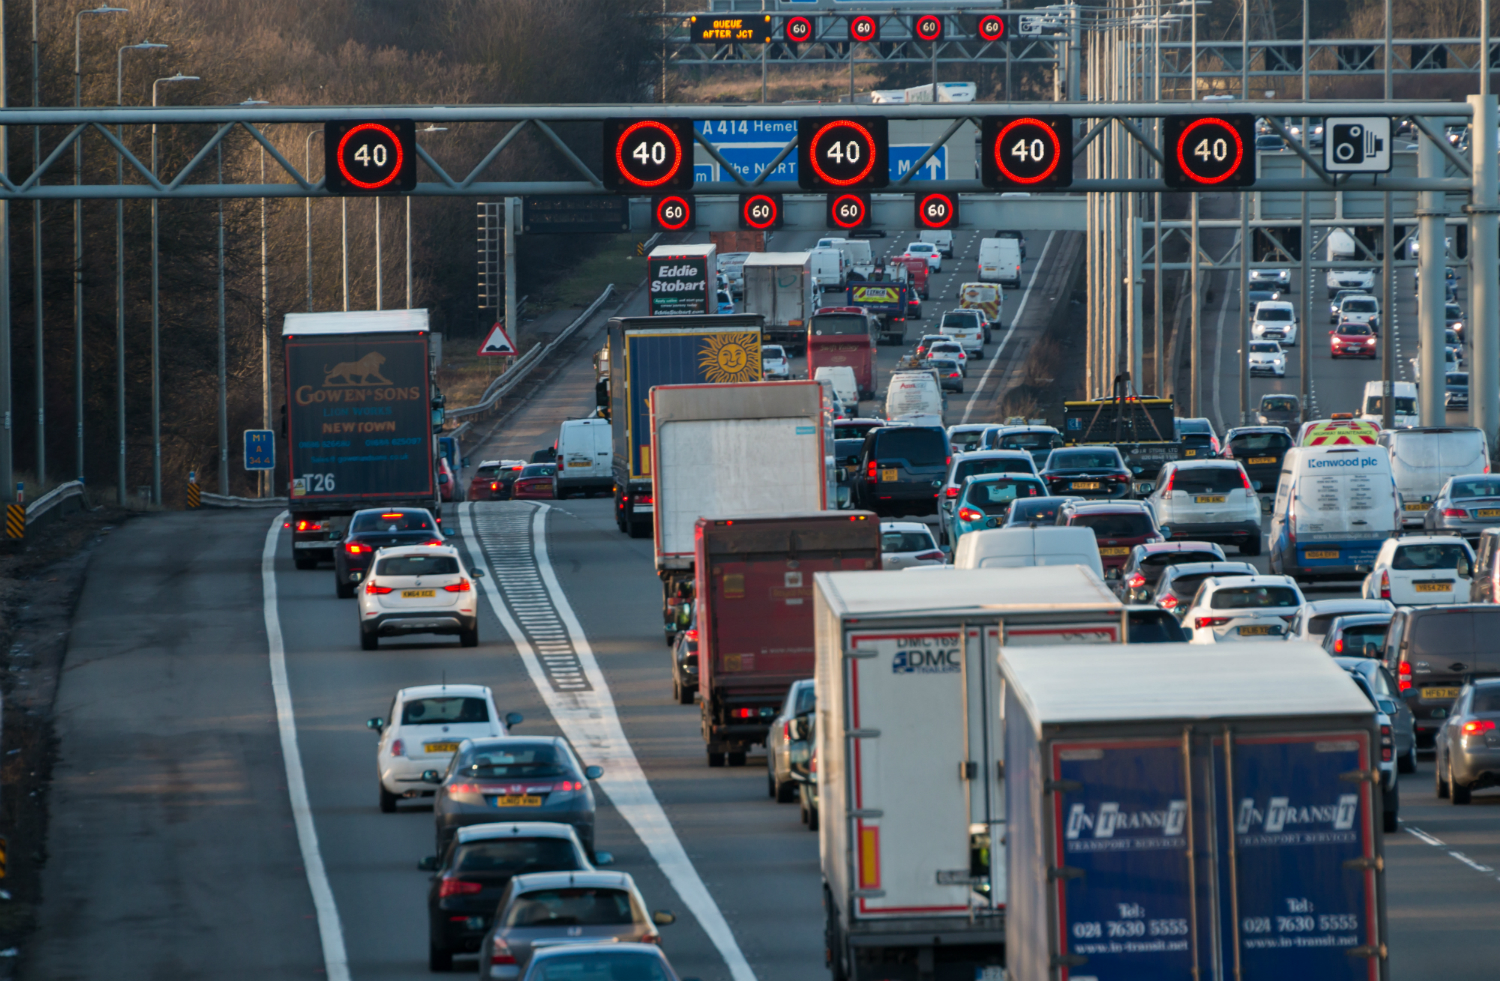 Motorway image - heavy traffic needs roads policing